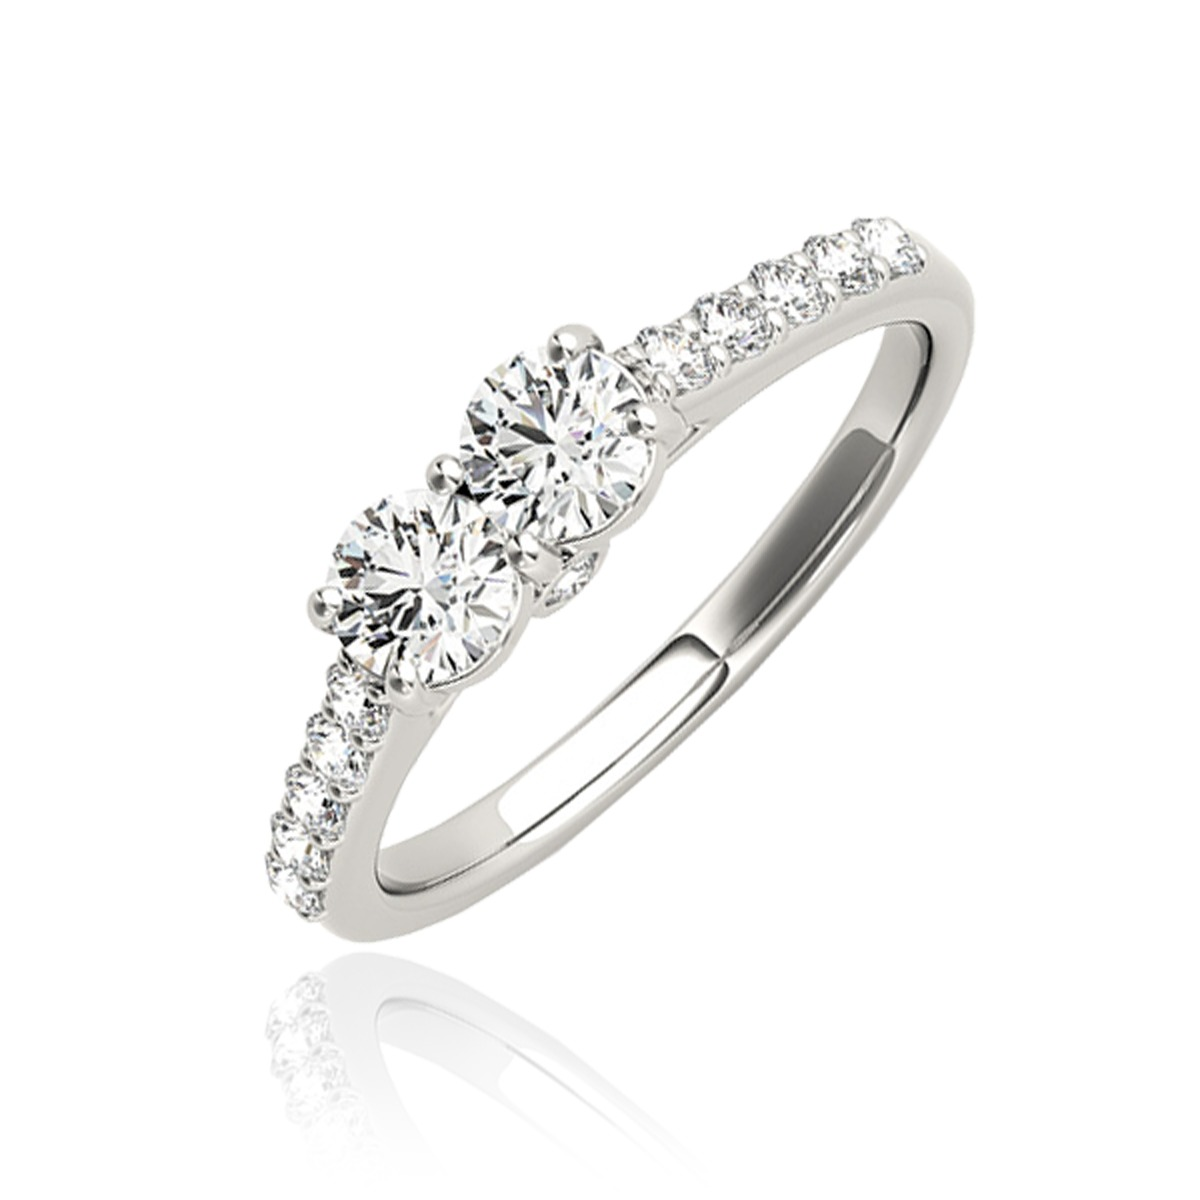 1/2 Carat T.W. Round Cut Diamond Two Stone Ring 10K White Gold